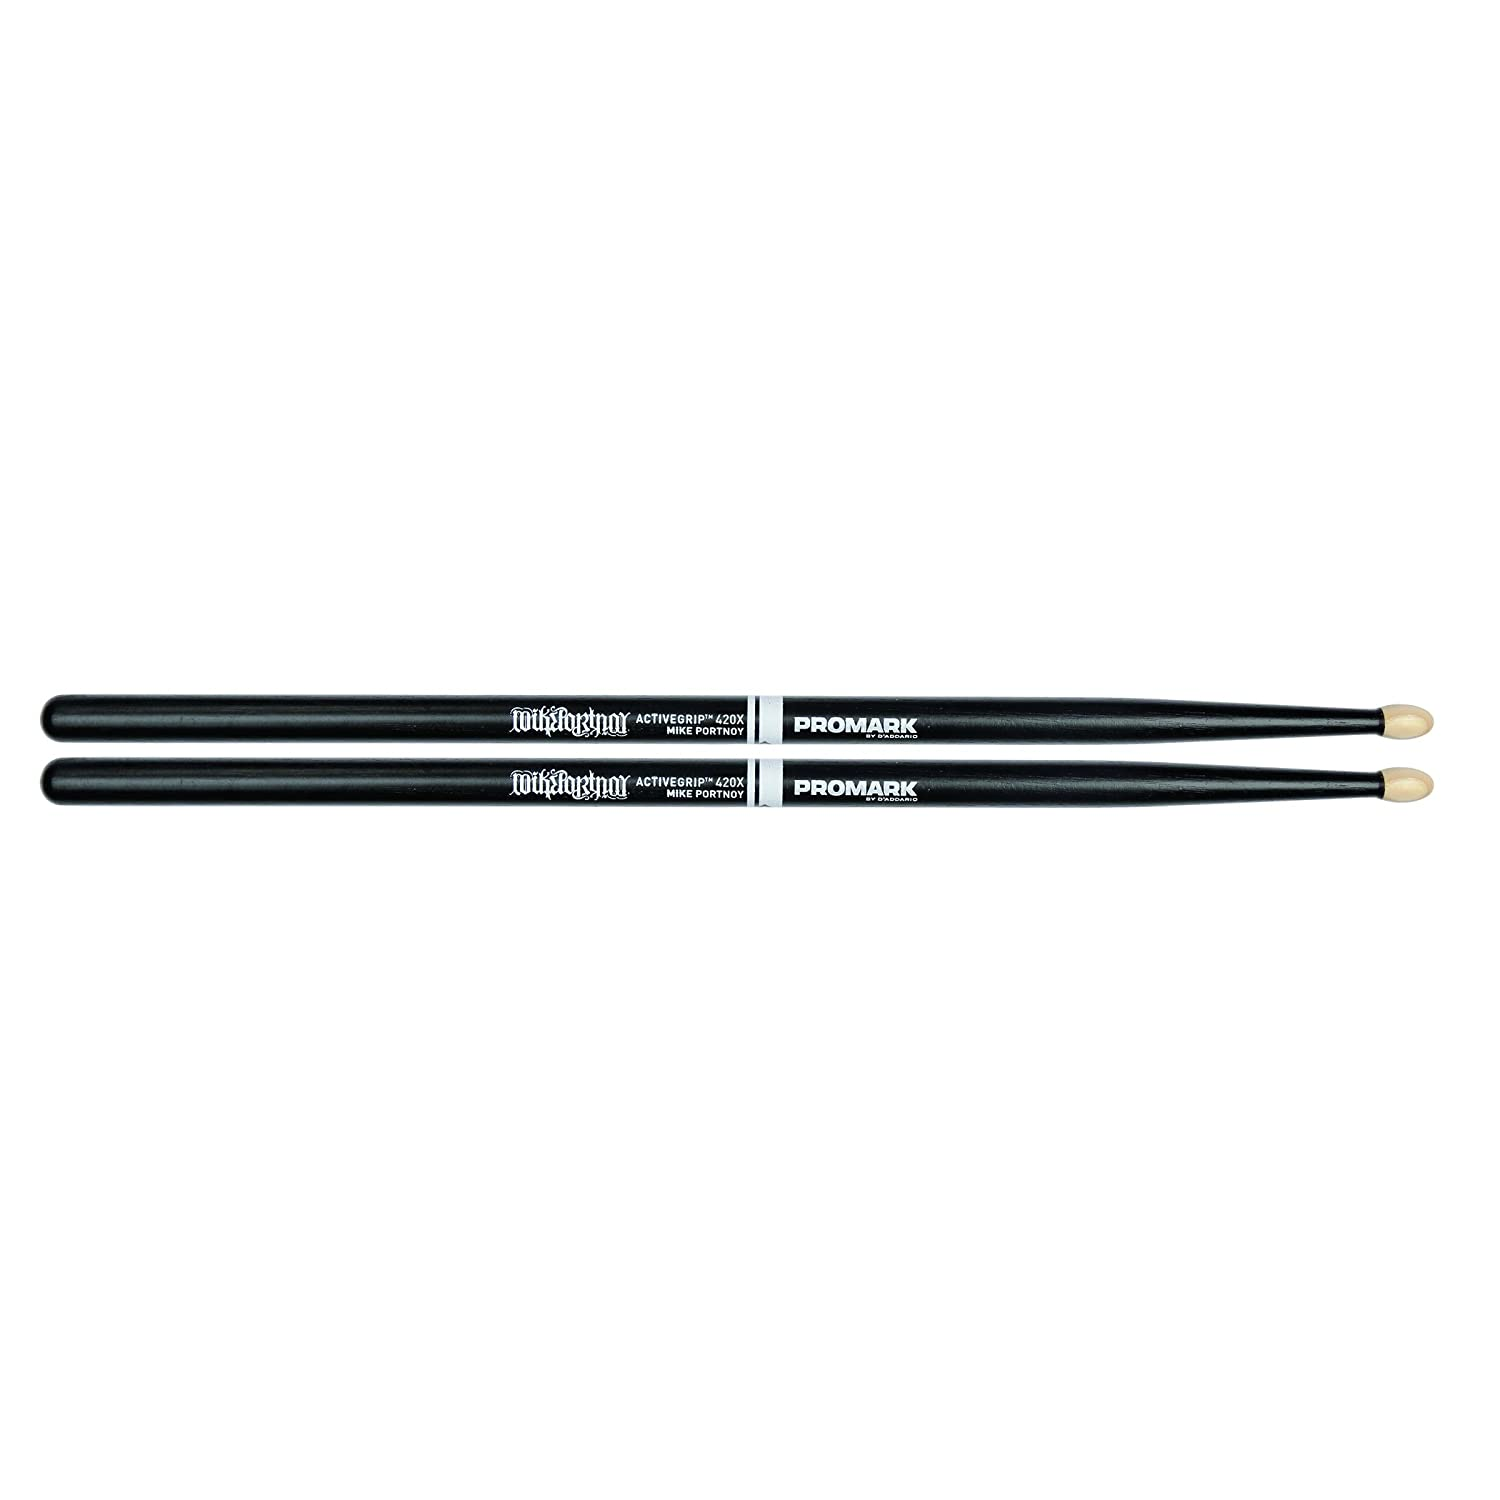 Promark Mike Portnoy 420X Signature Drumsticks with Active Grip